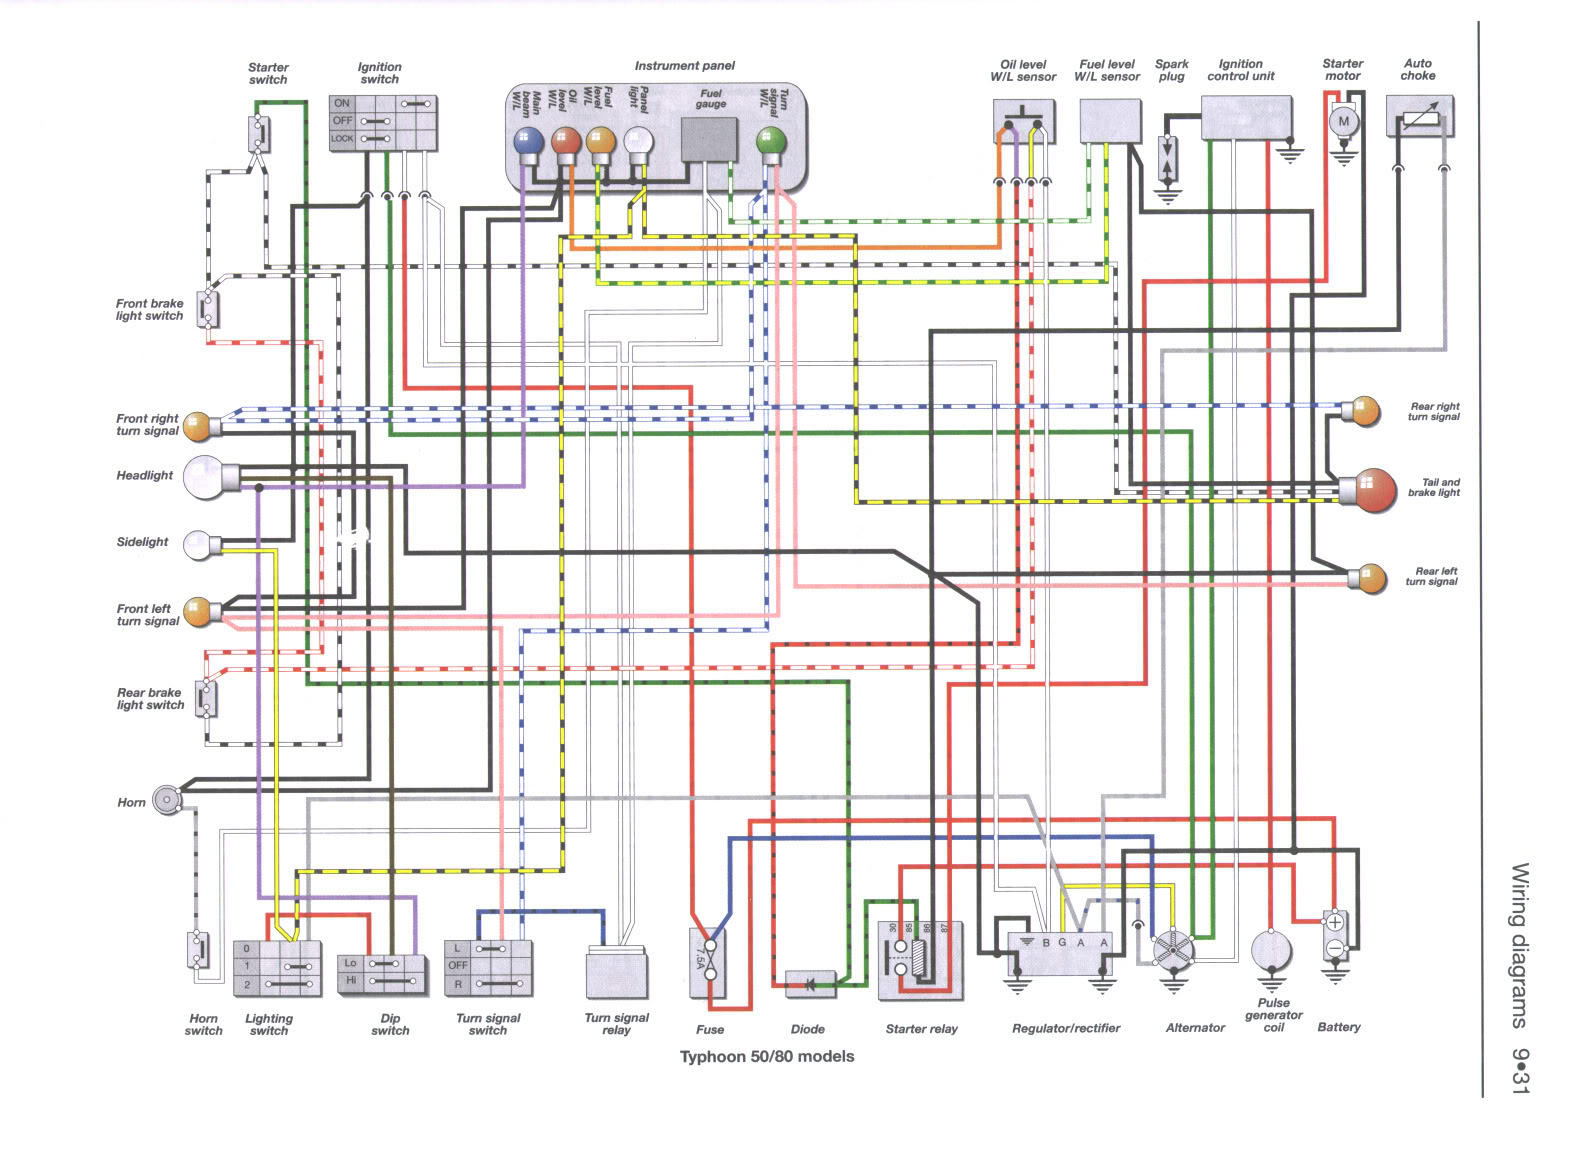 taotao 50 ignition wiring diagram images wiring diagram moreover ignition wiring diagram tao and schematic